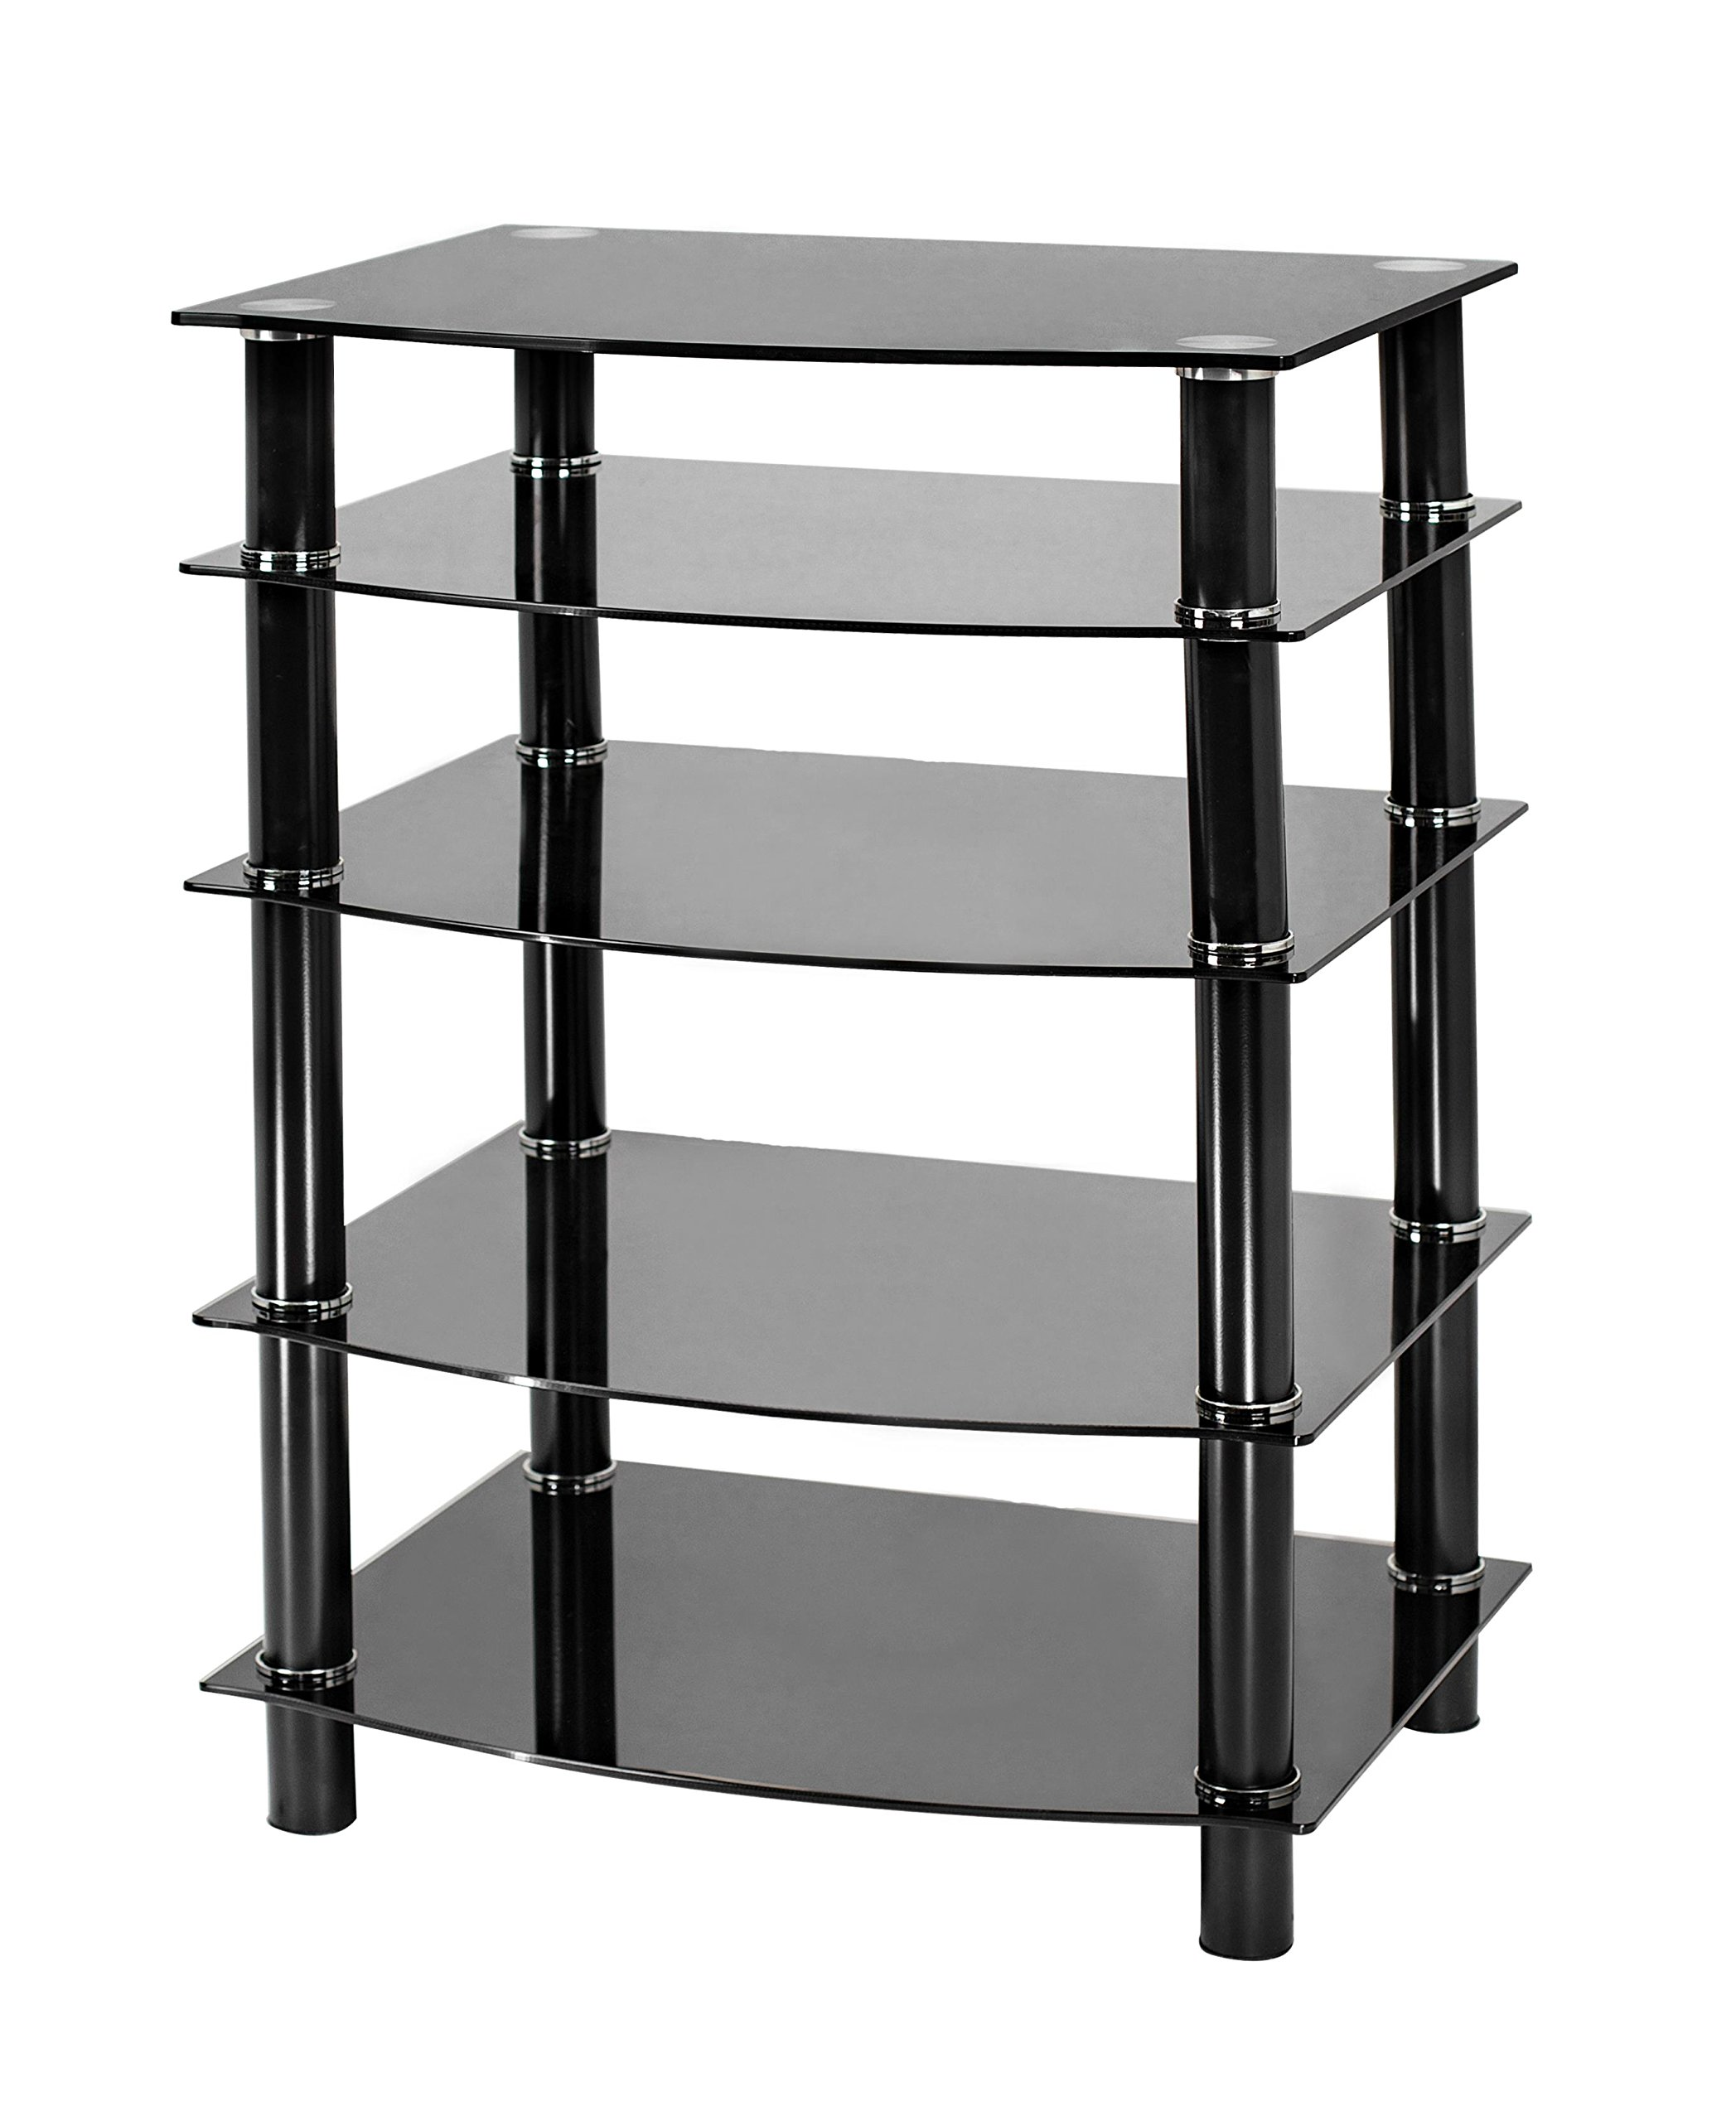 Naomi Home 5 Tier Glass AV Component Media Stand Black/Black